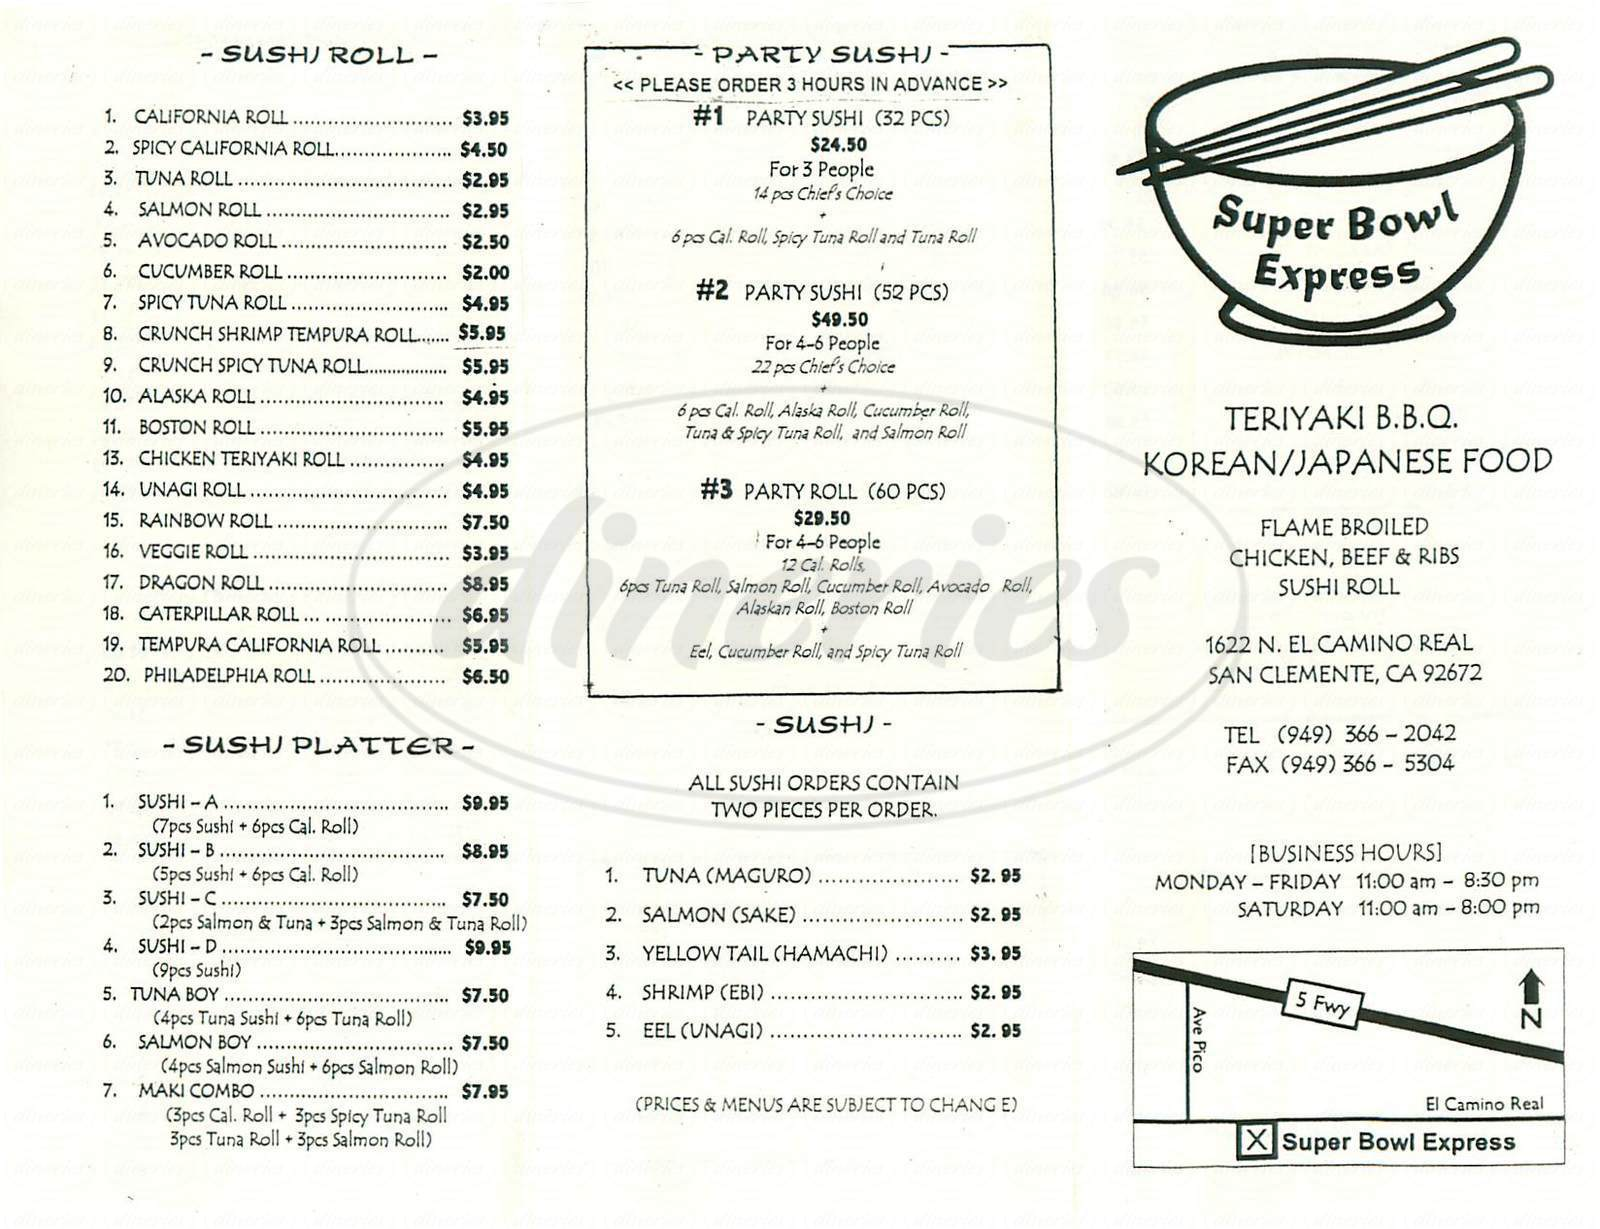 menu for Super Bowl Express